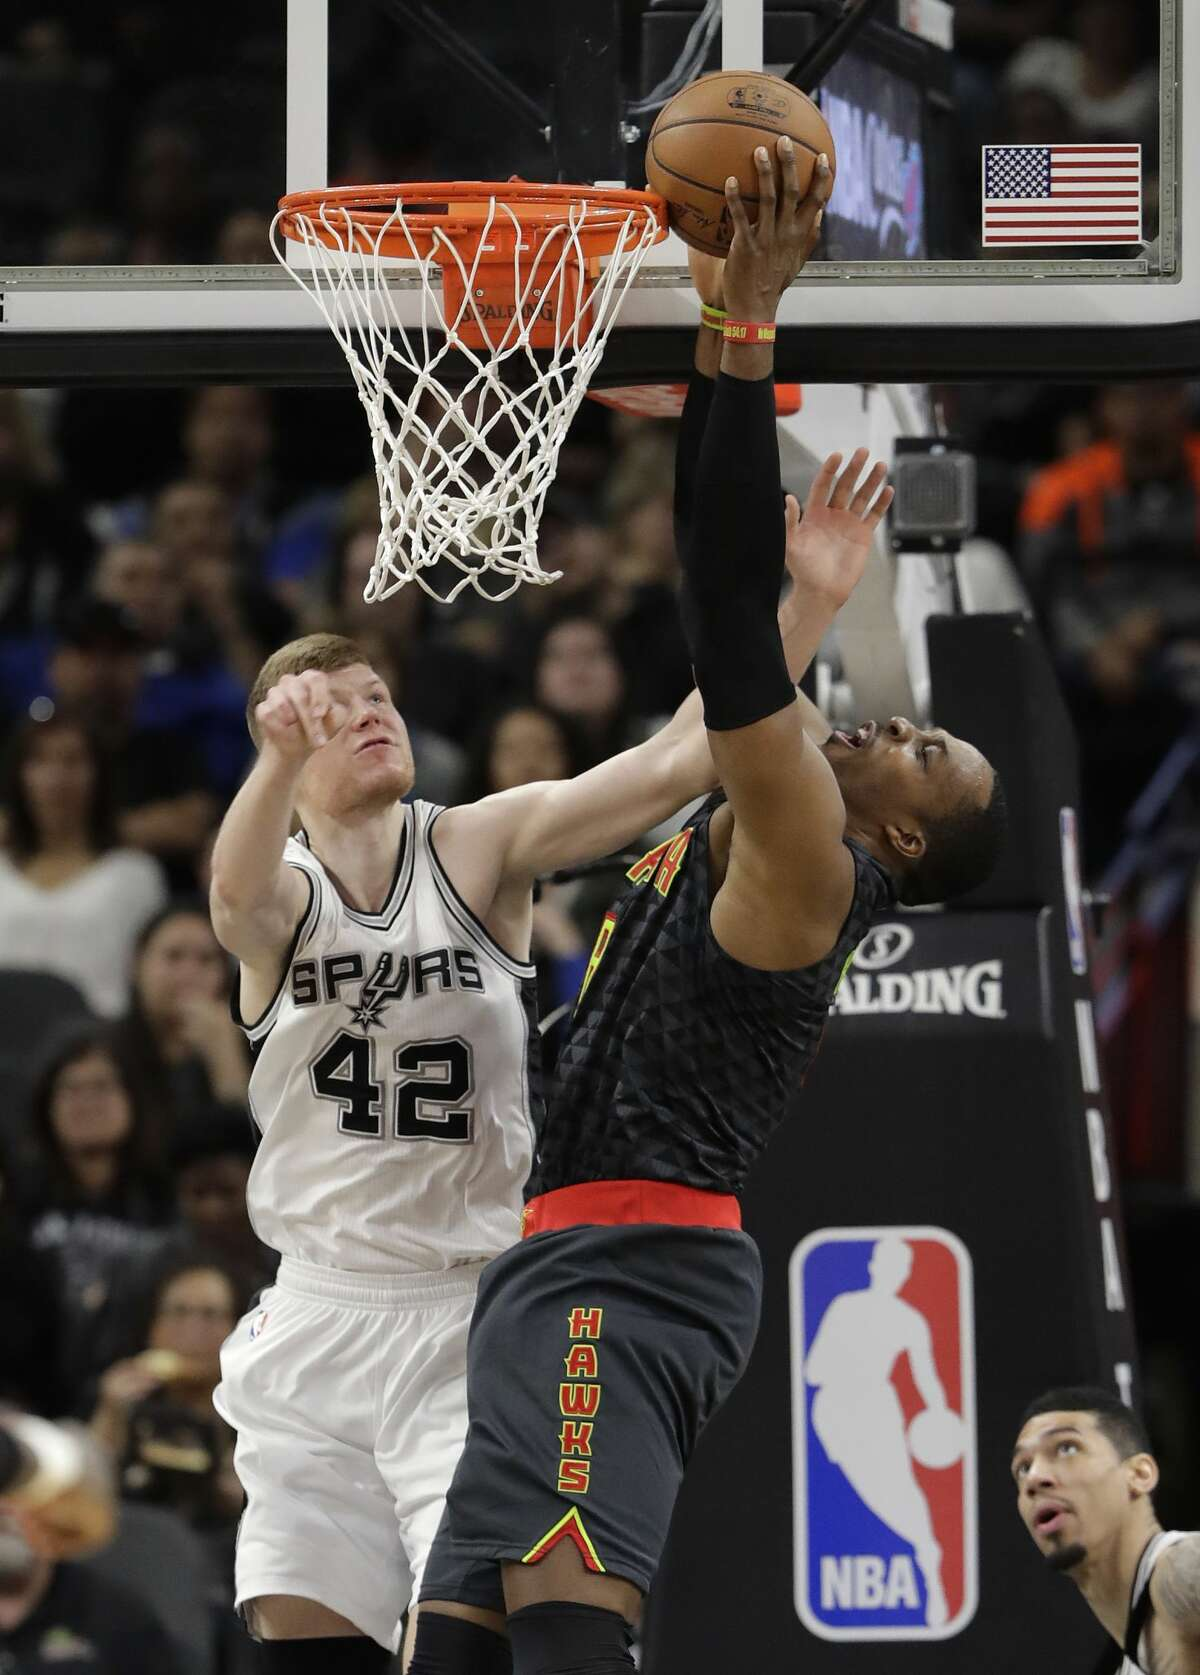 Atlanta Hawks center Dwight Howard, right, is fouled by San Antonio Spurs forward Davis Bertans (42) as he tries to score during the first half of an NBA basketball game, Monday, March 13, 2017, in San Antonio. (AP Photo/Eric Gay)